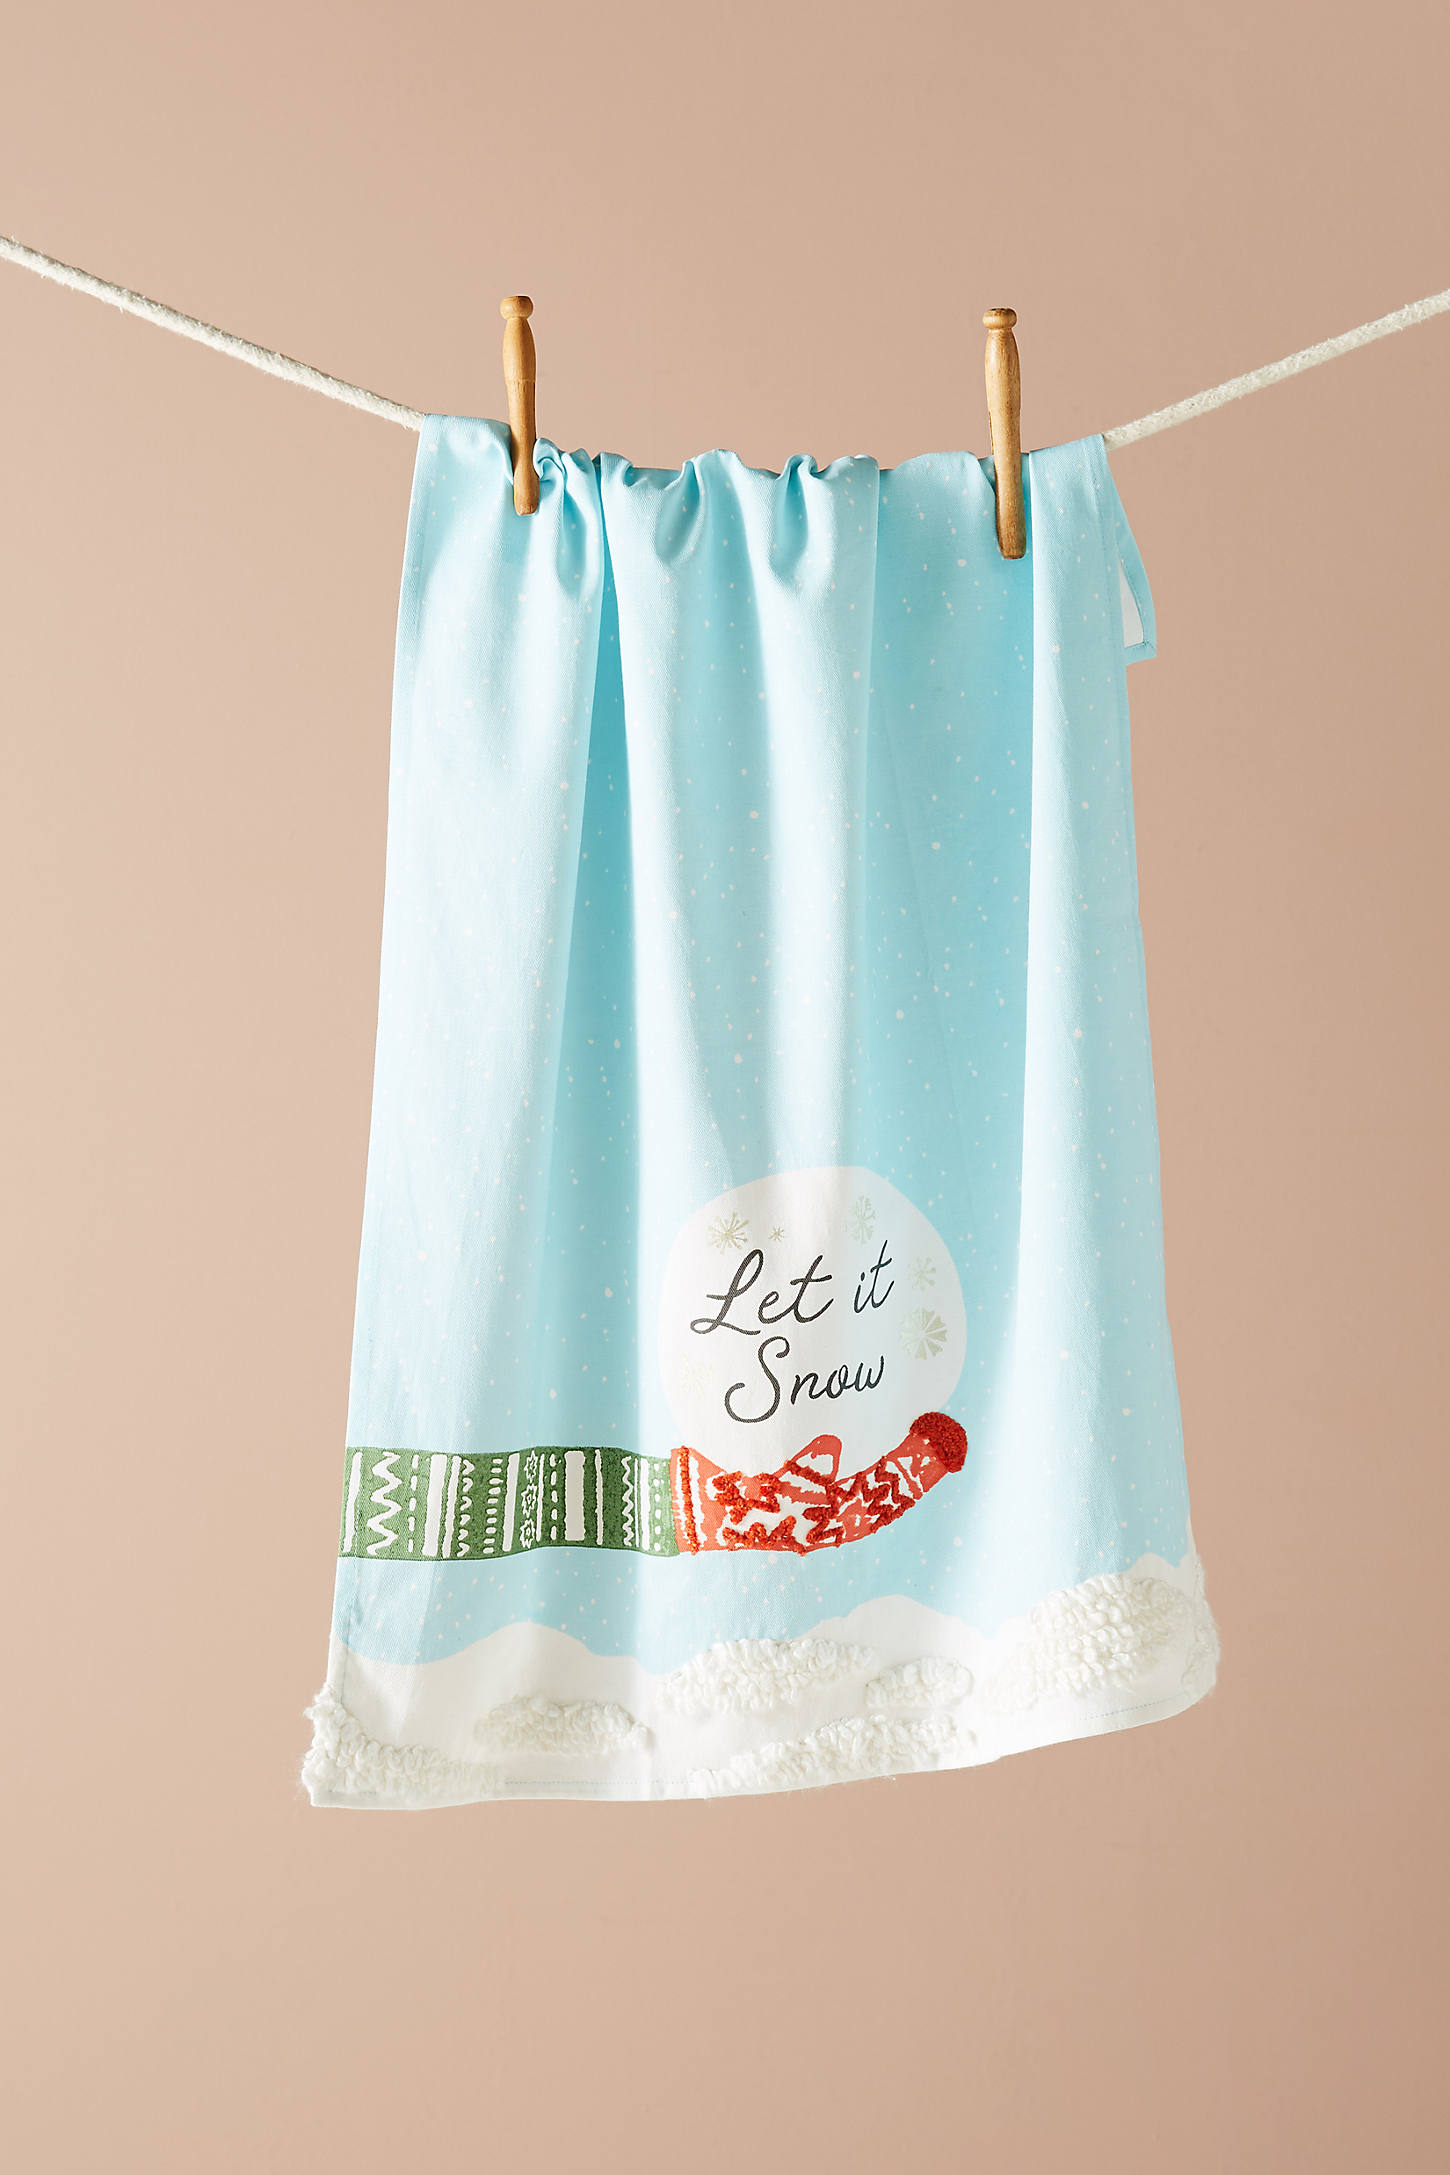 Let It Snow Dish Towel